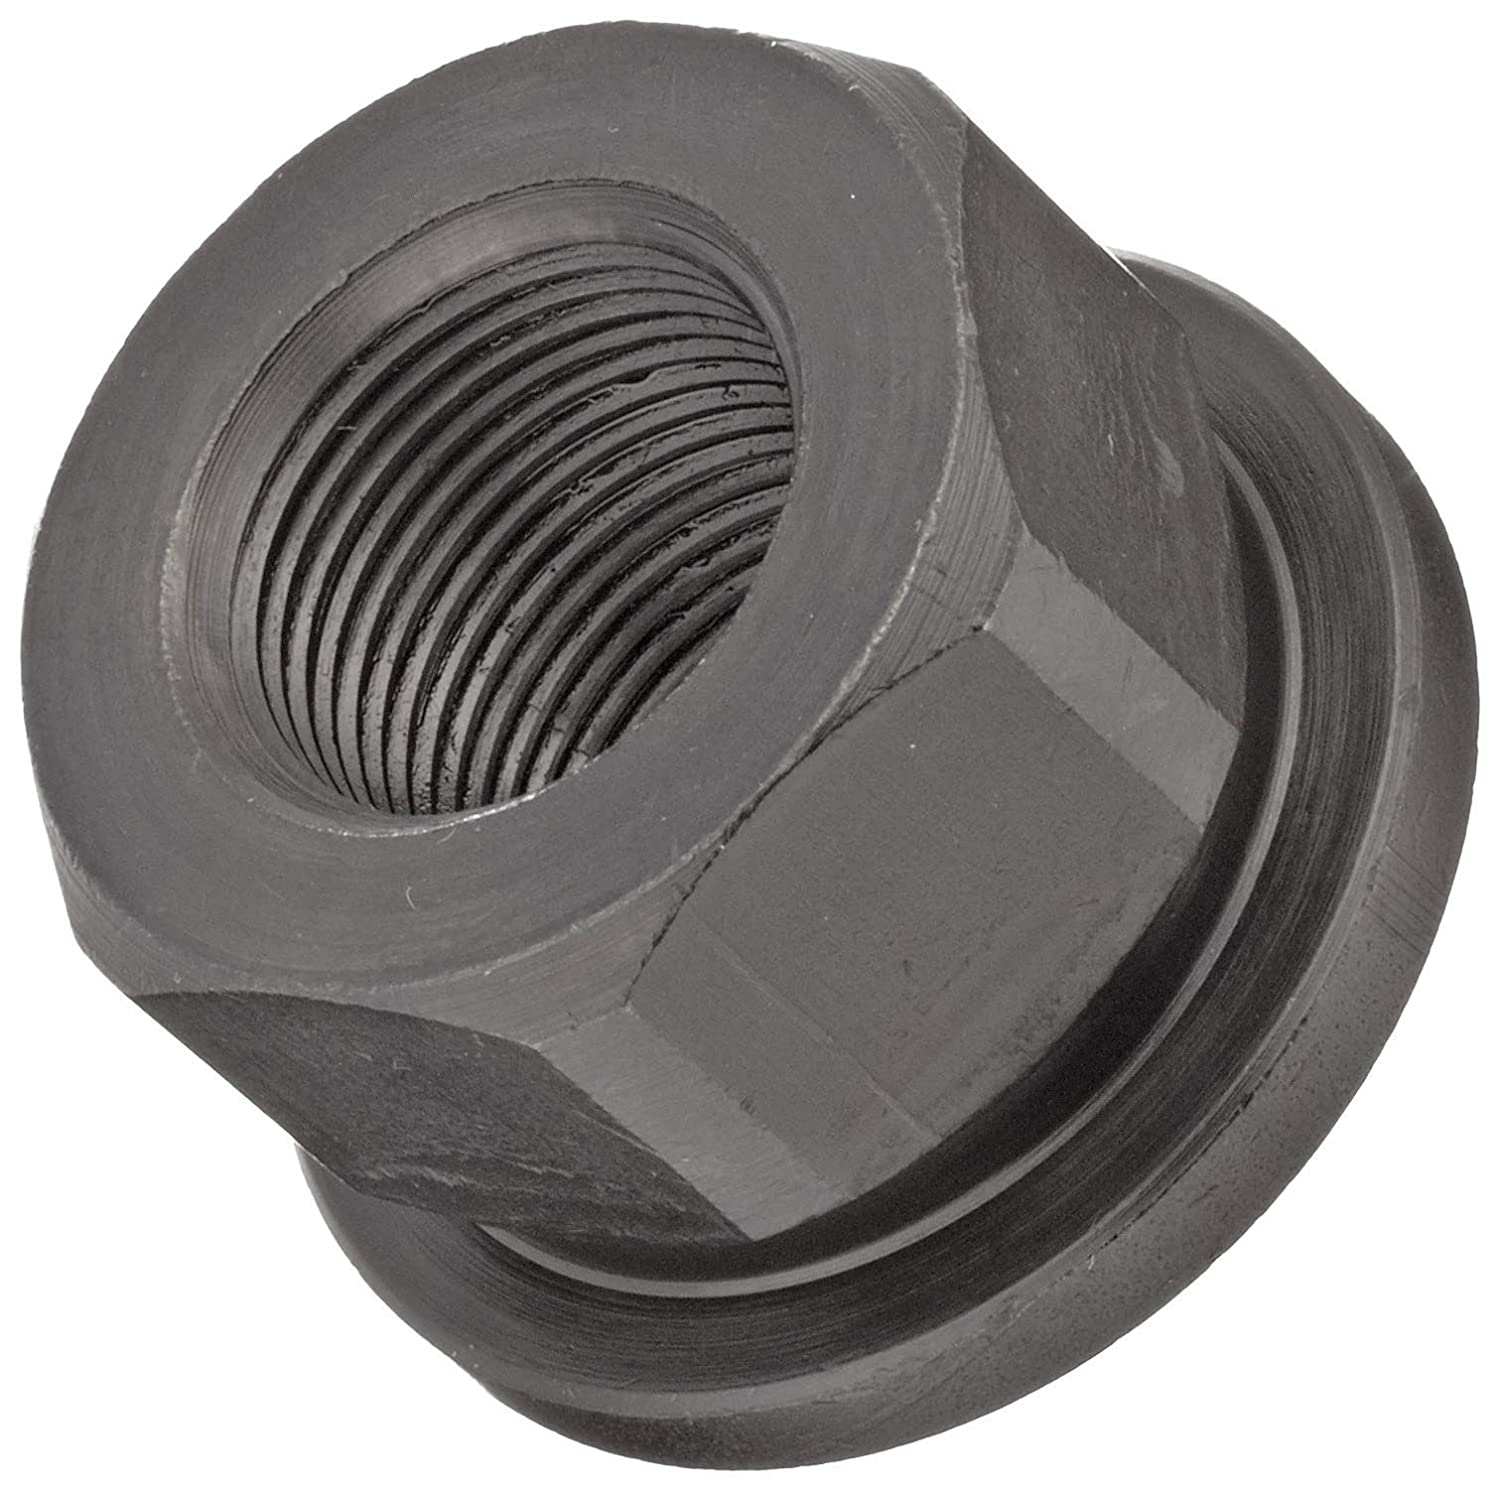 12L14 Steel Hex Nut Class 6H 7//16-20 Threads Made in US 7//16 Width Across Flats Right Hand Threads Pack of 5 Black Oxide Finish Class 6H 7//16-20 Threads 7//16 Width Across Flats TE-CO Grade 8